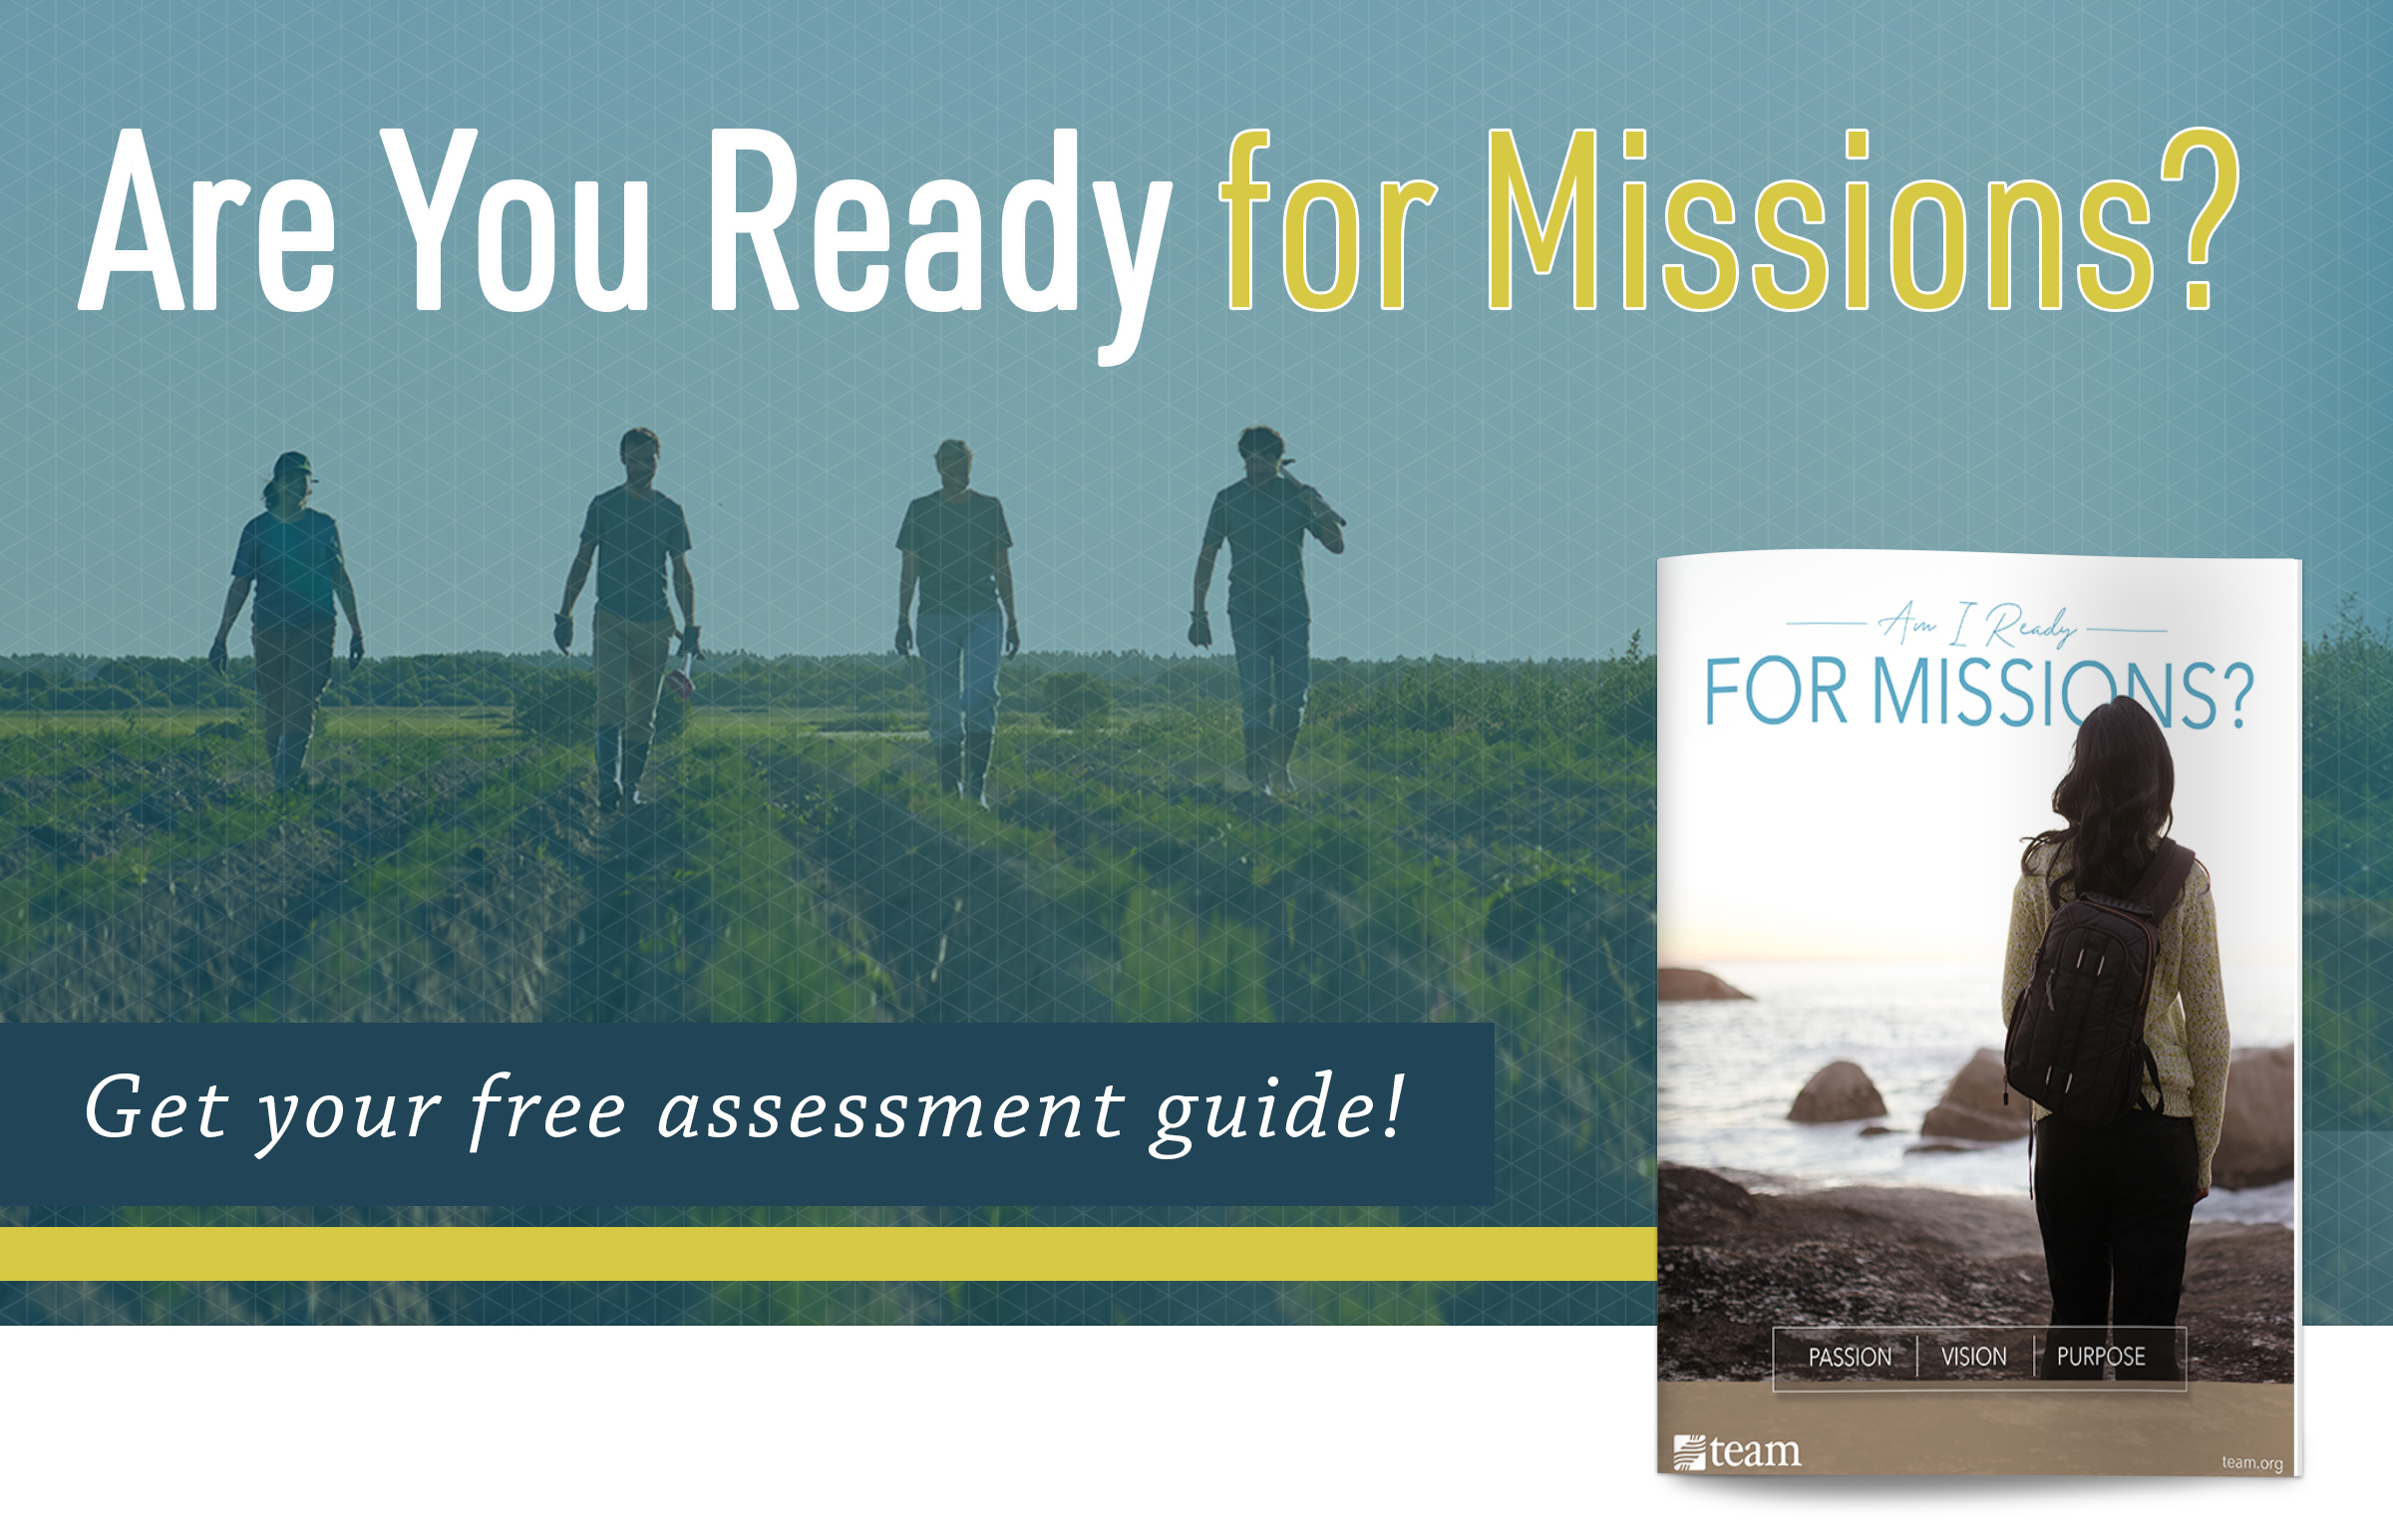 Are you ready for missions? Get your free assessment guide!